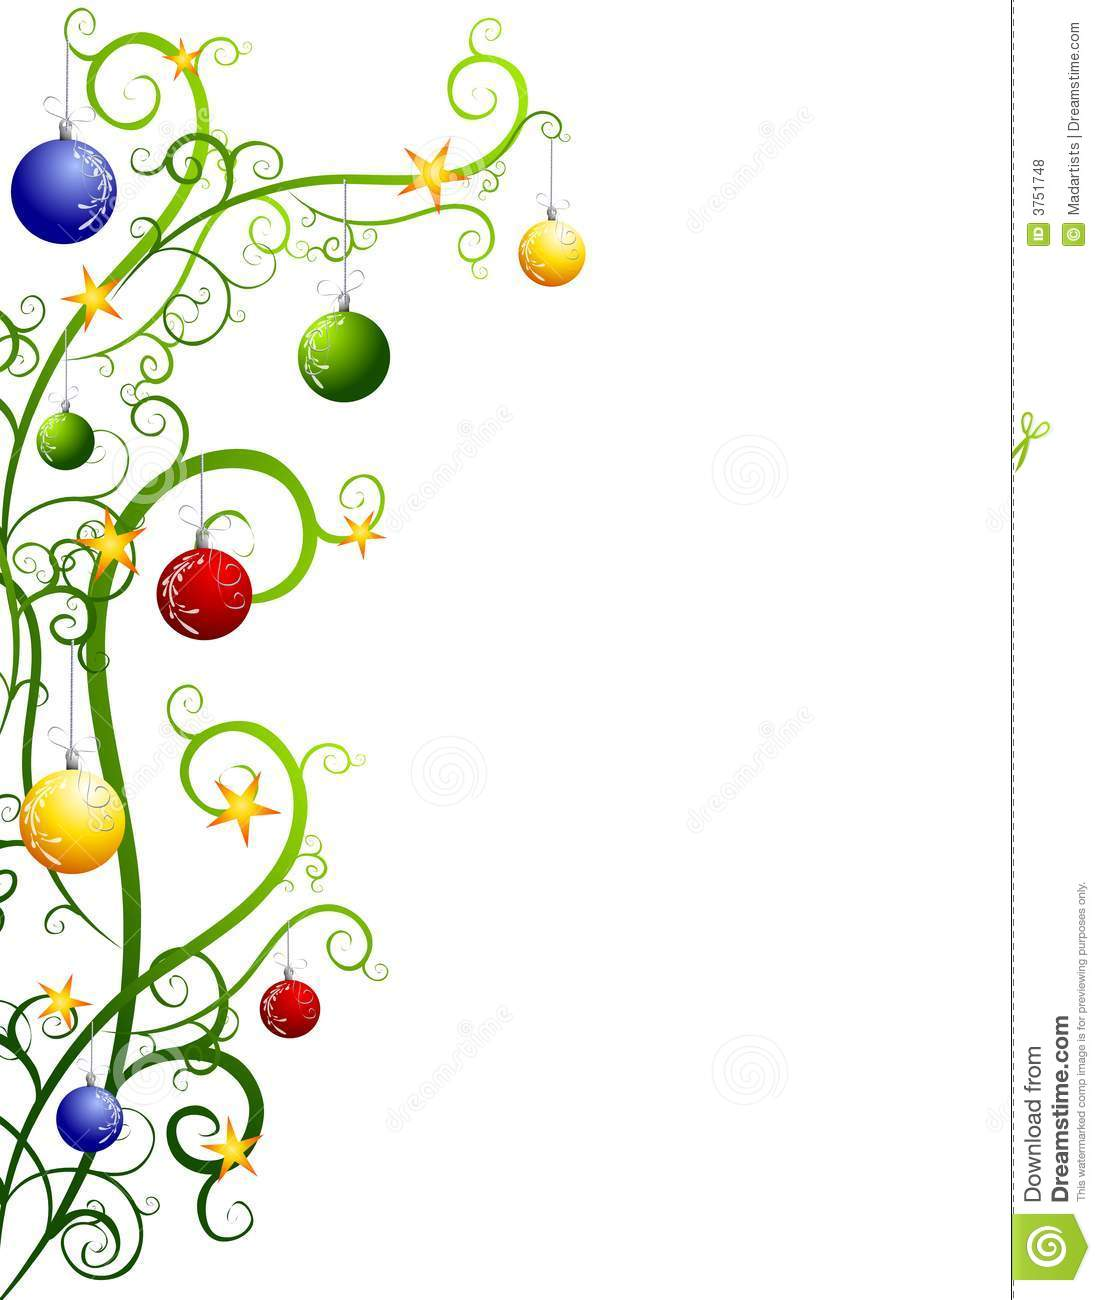 Christmas Tree Ornament Clipart - Clipart Suggest Christmas Tree Border Clip Art Free